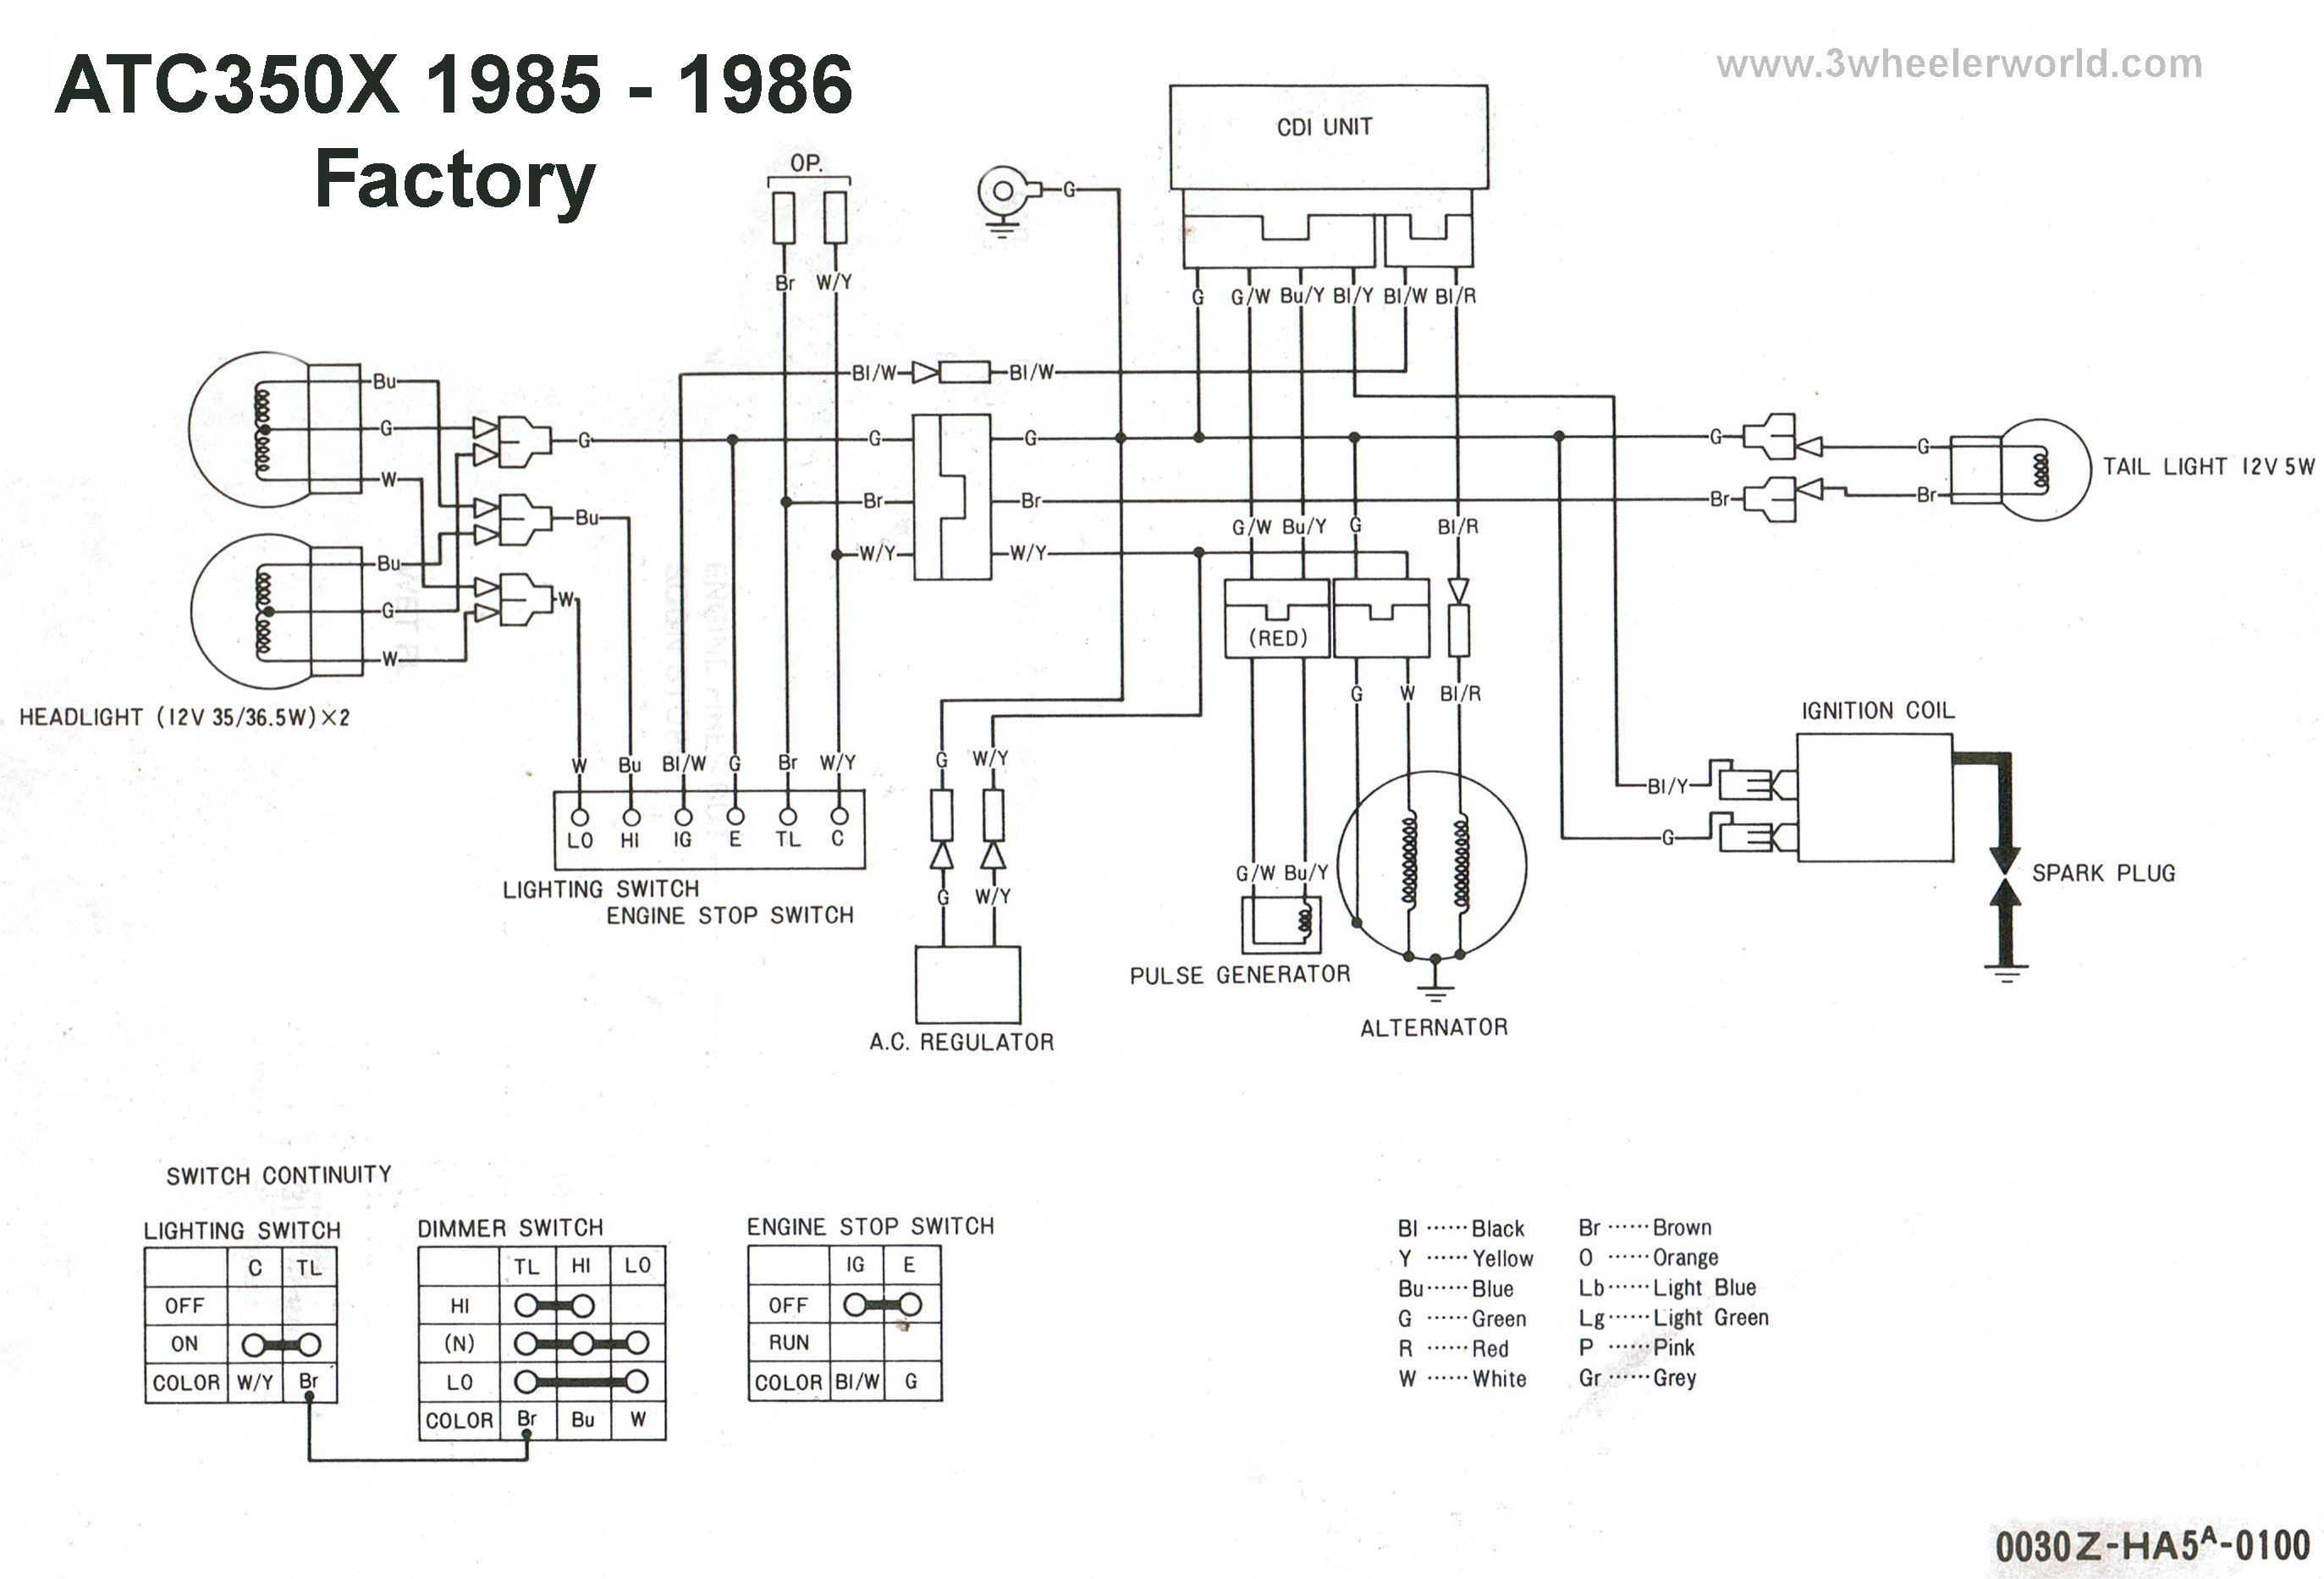 ... ATC350Xx85Thru86 3 wheeler world tech help honda wiring diagrams 1987 lt250r  wiring diagram at cita.